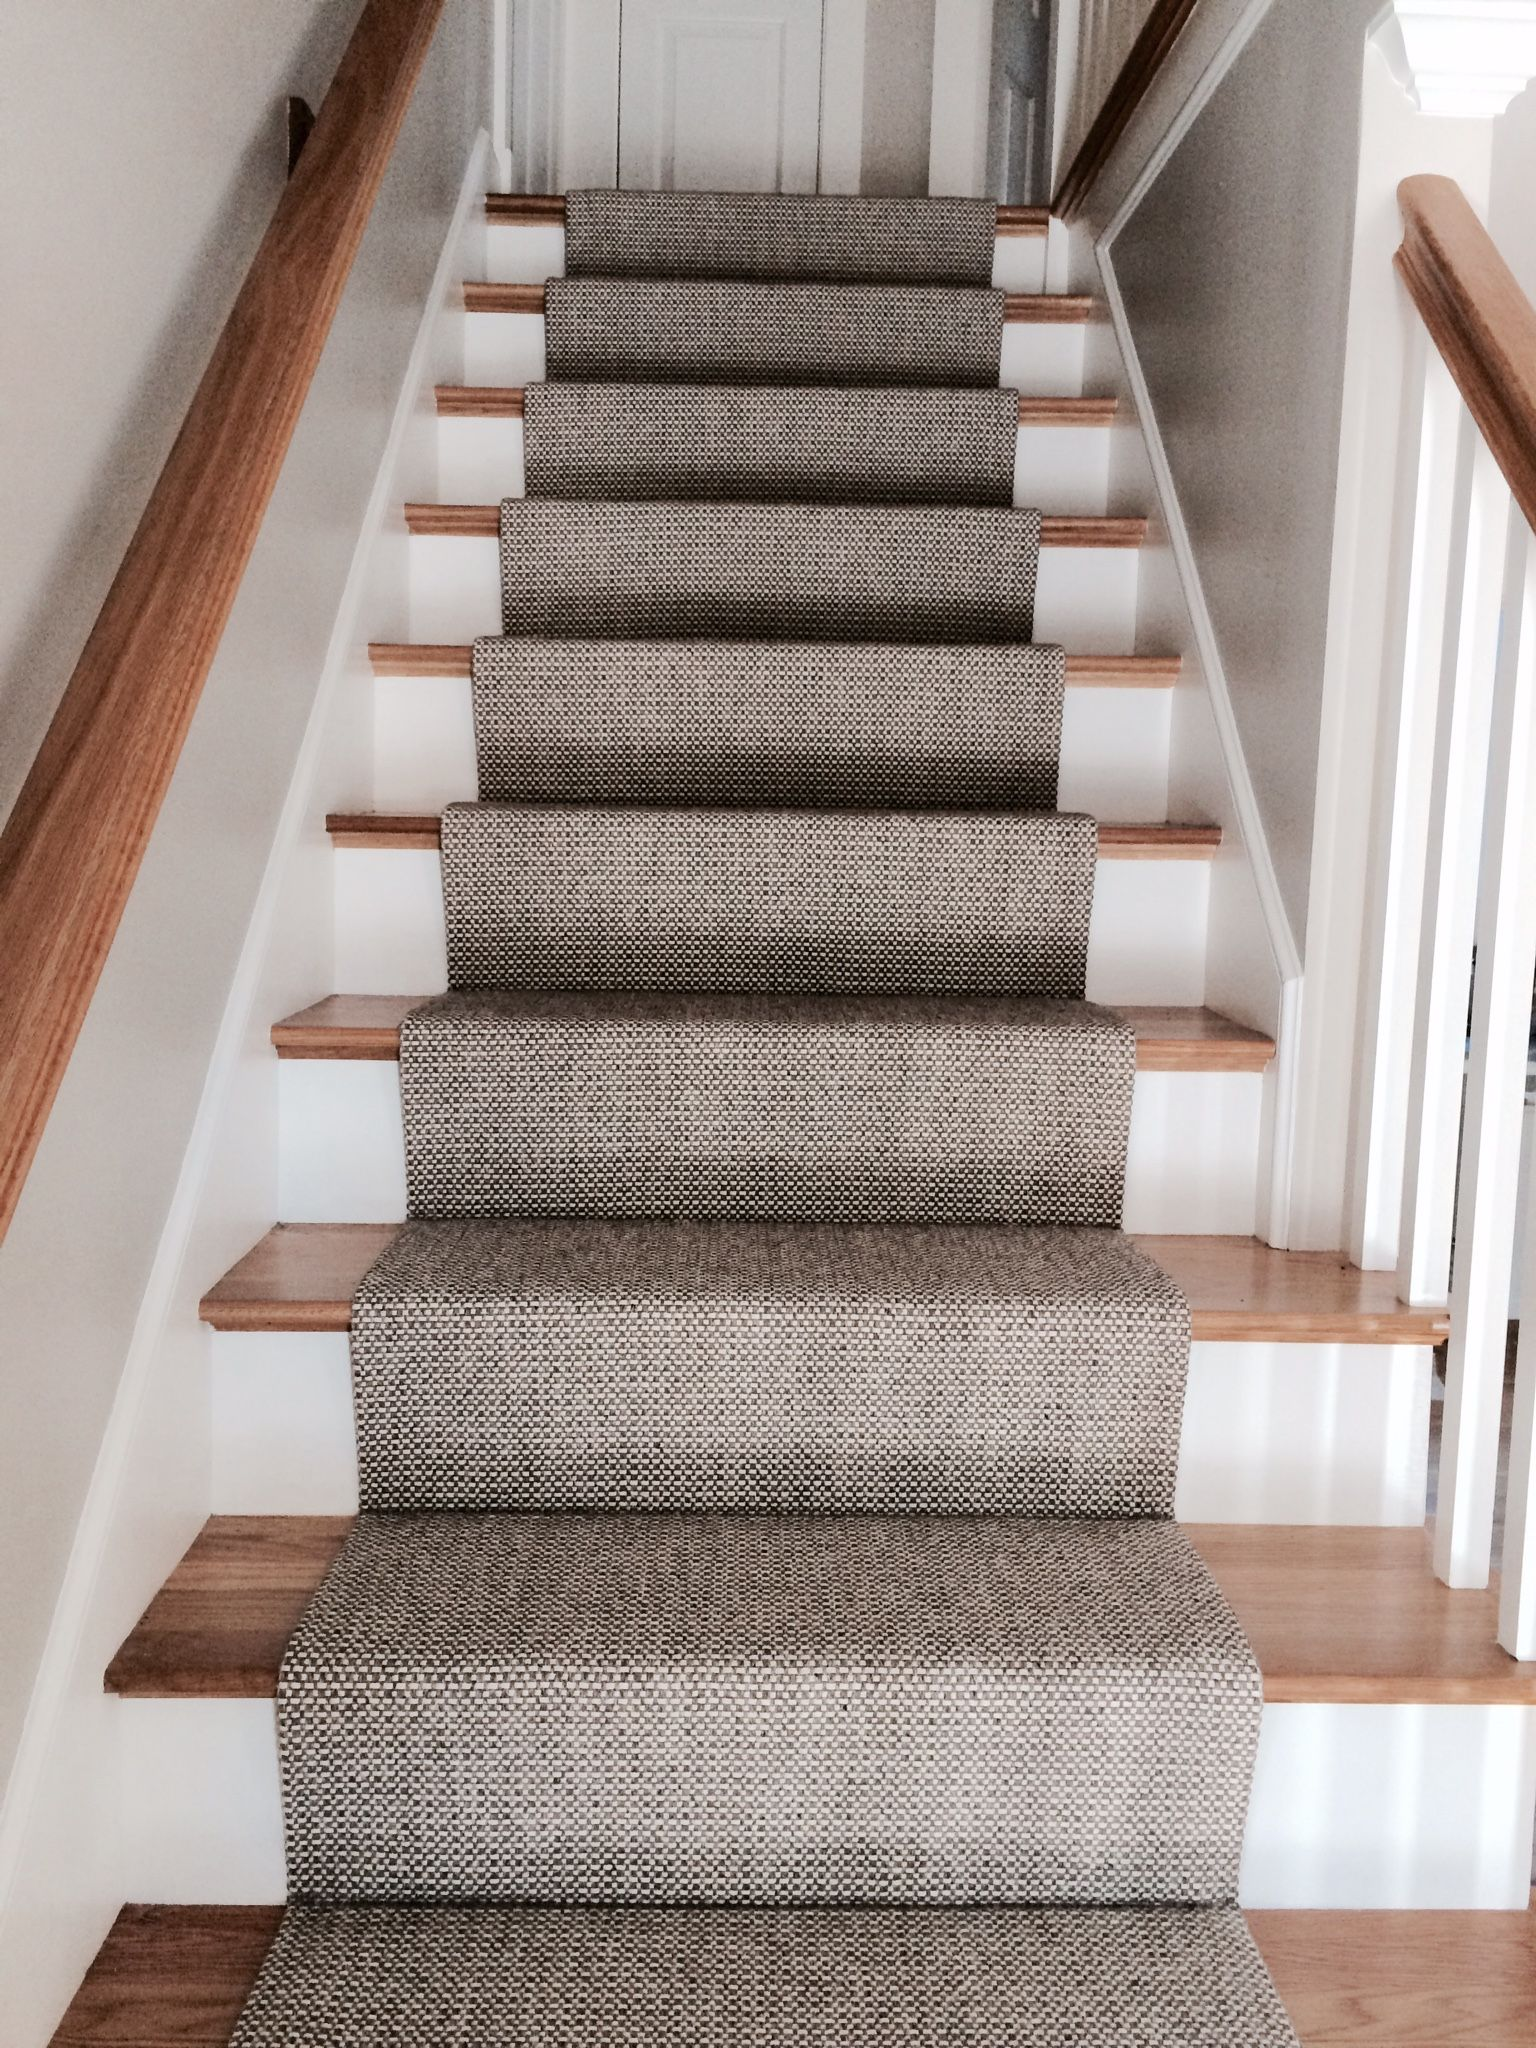 stair runners woven wool stair runner that we fabricated using a fold and stitch method BYMCPDF